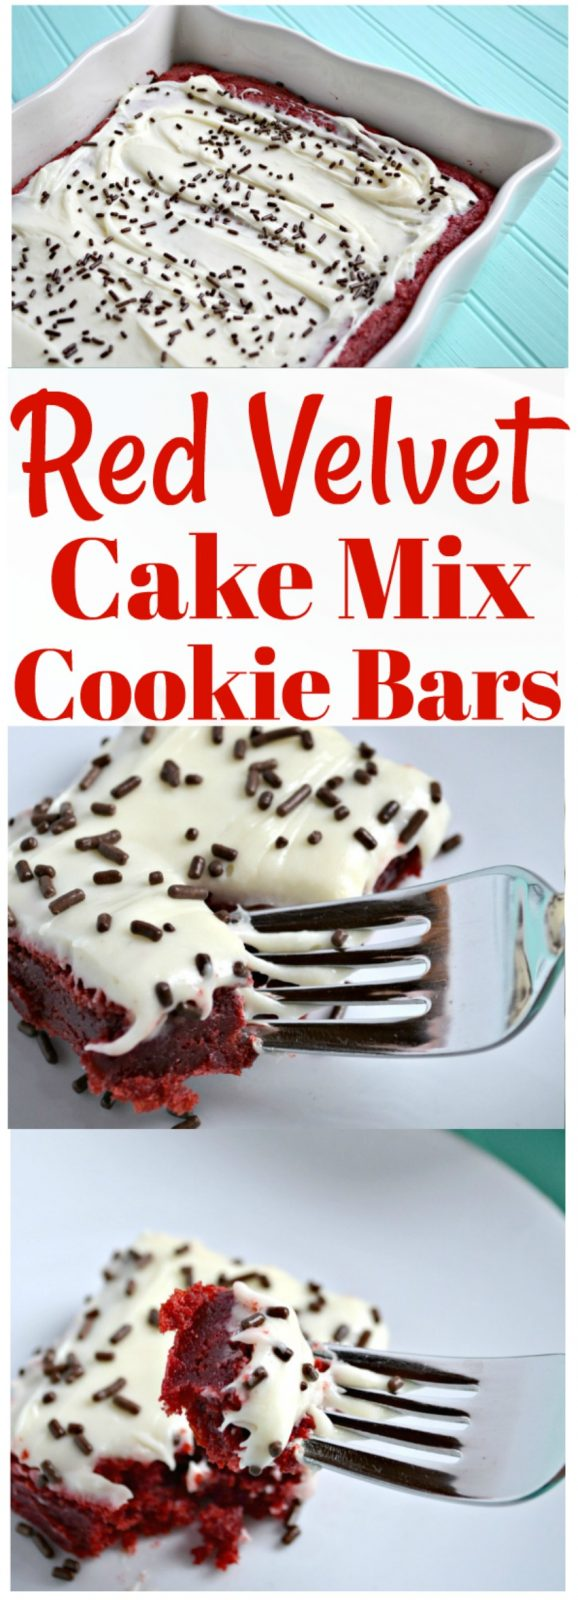 Red Velvet Cake Mix Cookie Bars The Cards We Drew